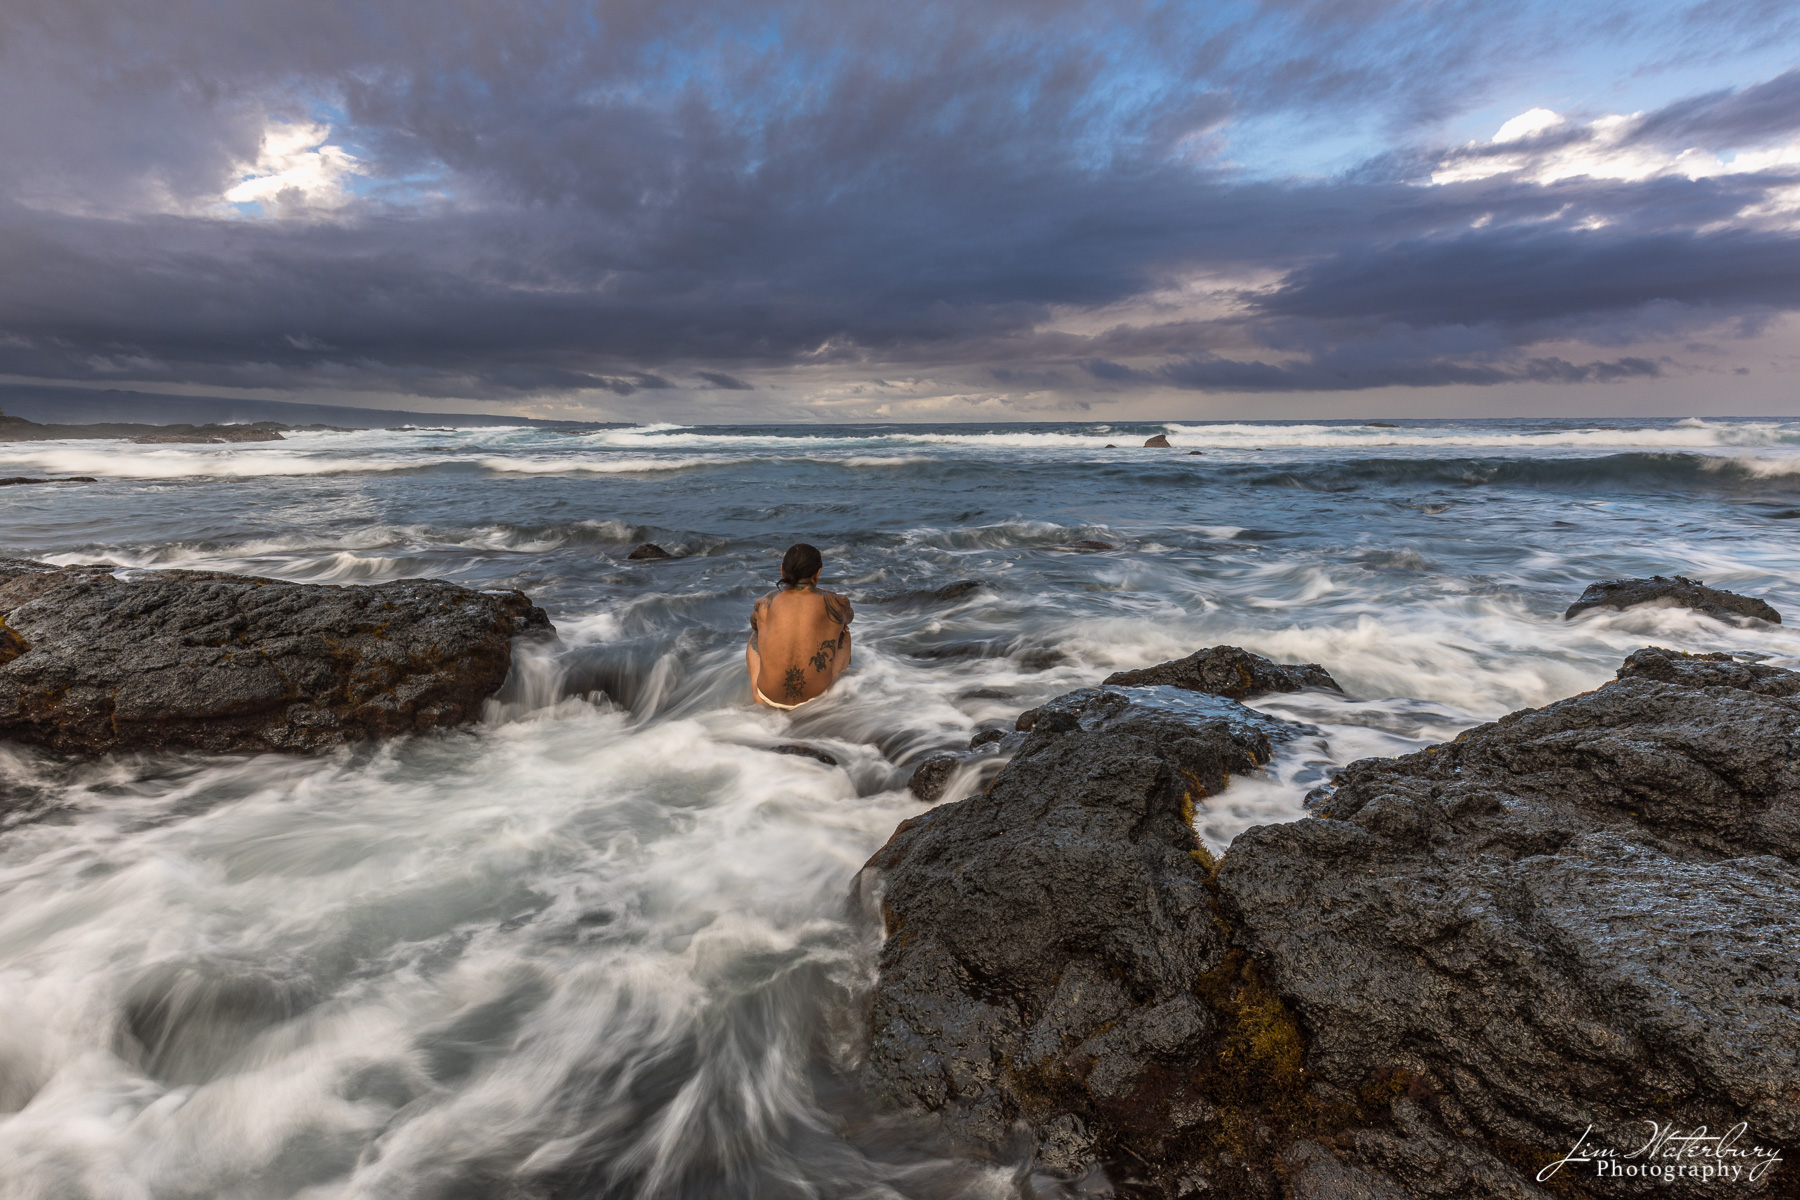 A local Hawaian looks out into the vastness of the Pacific Ocean, from the rocky shores near Hilo, on the Big Island of Hawaii...